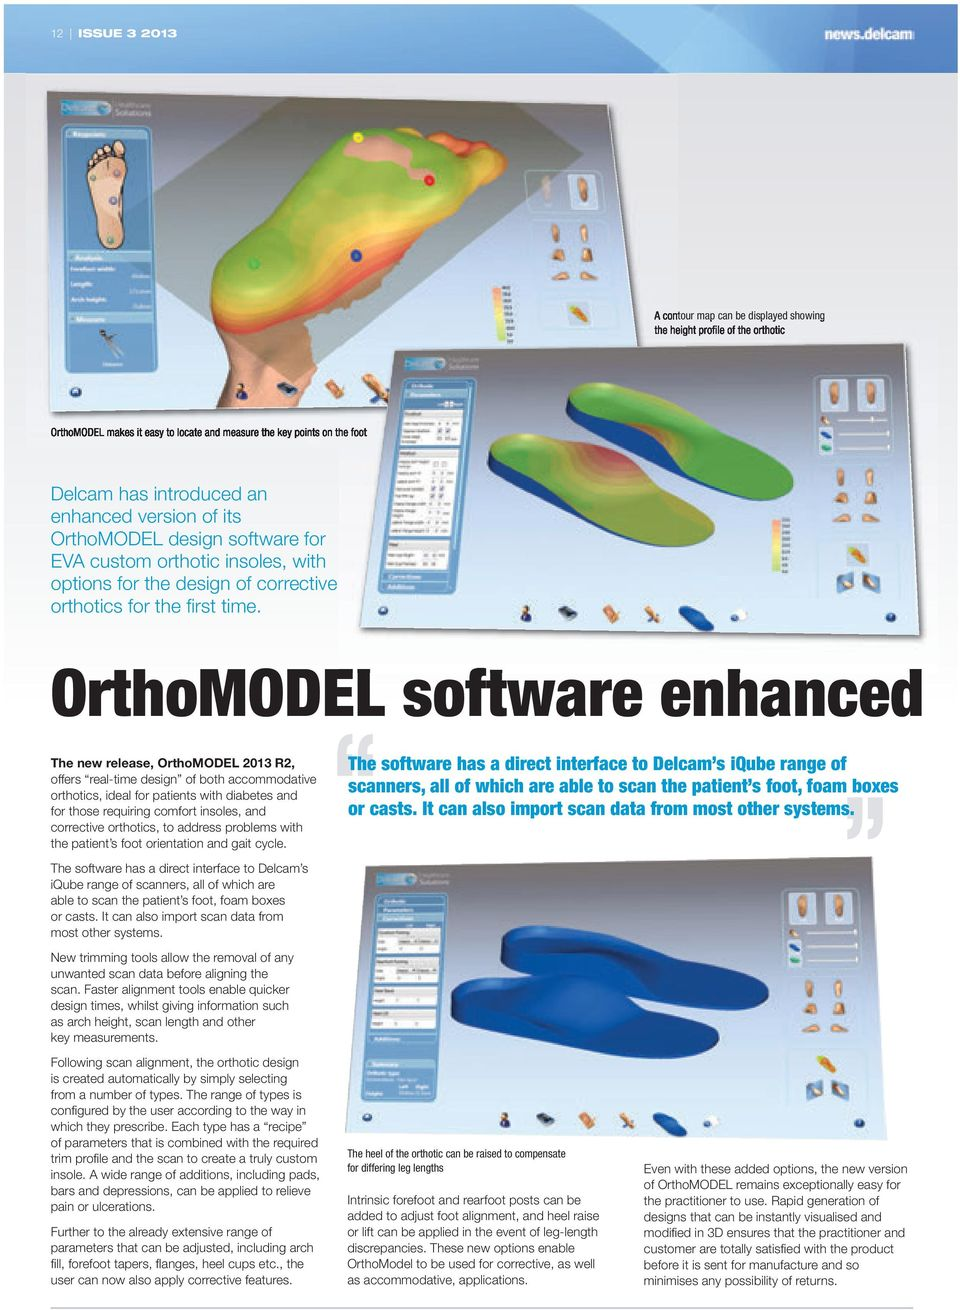 OrthoMODEL software enhanced The new release, OrthoMODEL 2013 R2, offers real-time design of both accommodative orthotics, ideal for patients with diabetes and for those requiring comfort insoles,